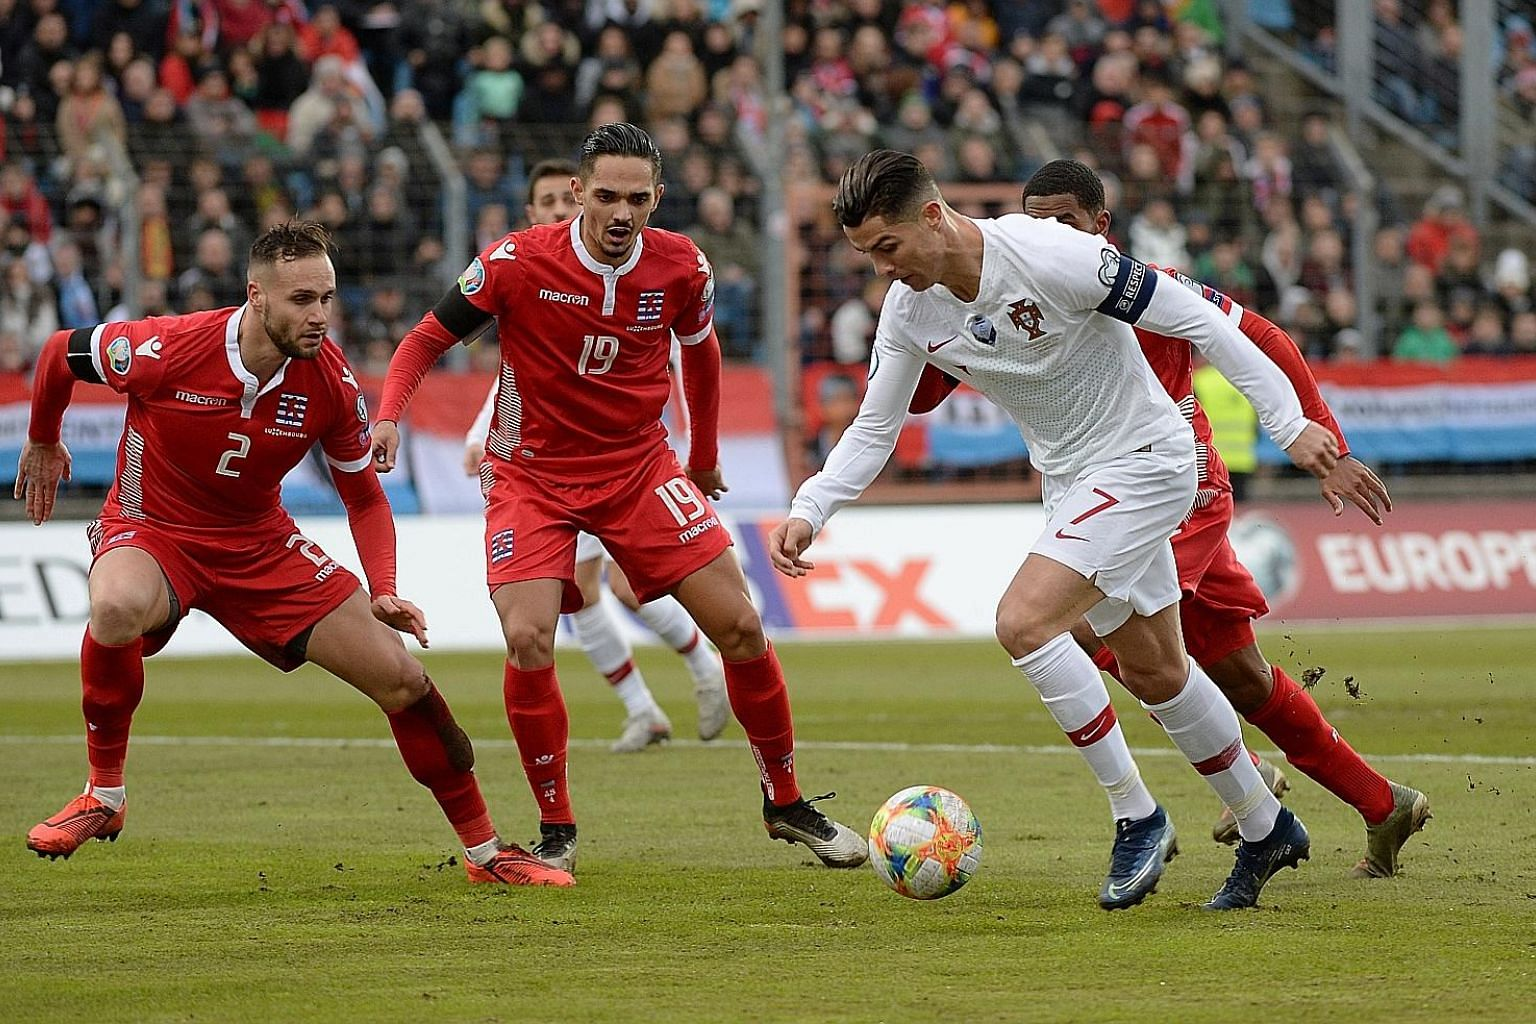 It was a mixed day for Portugal captain Cristiano Ronaldo, who is now agonisingly one short of a century of international goals even as he helped his country secure a spot at next year's European Championship with a 2-0 away win over Luxembourg. The